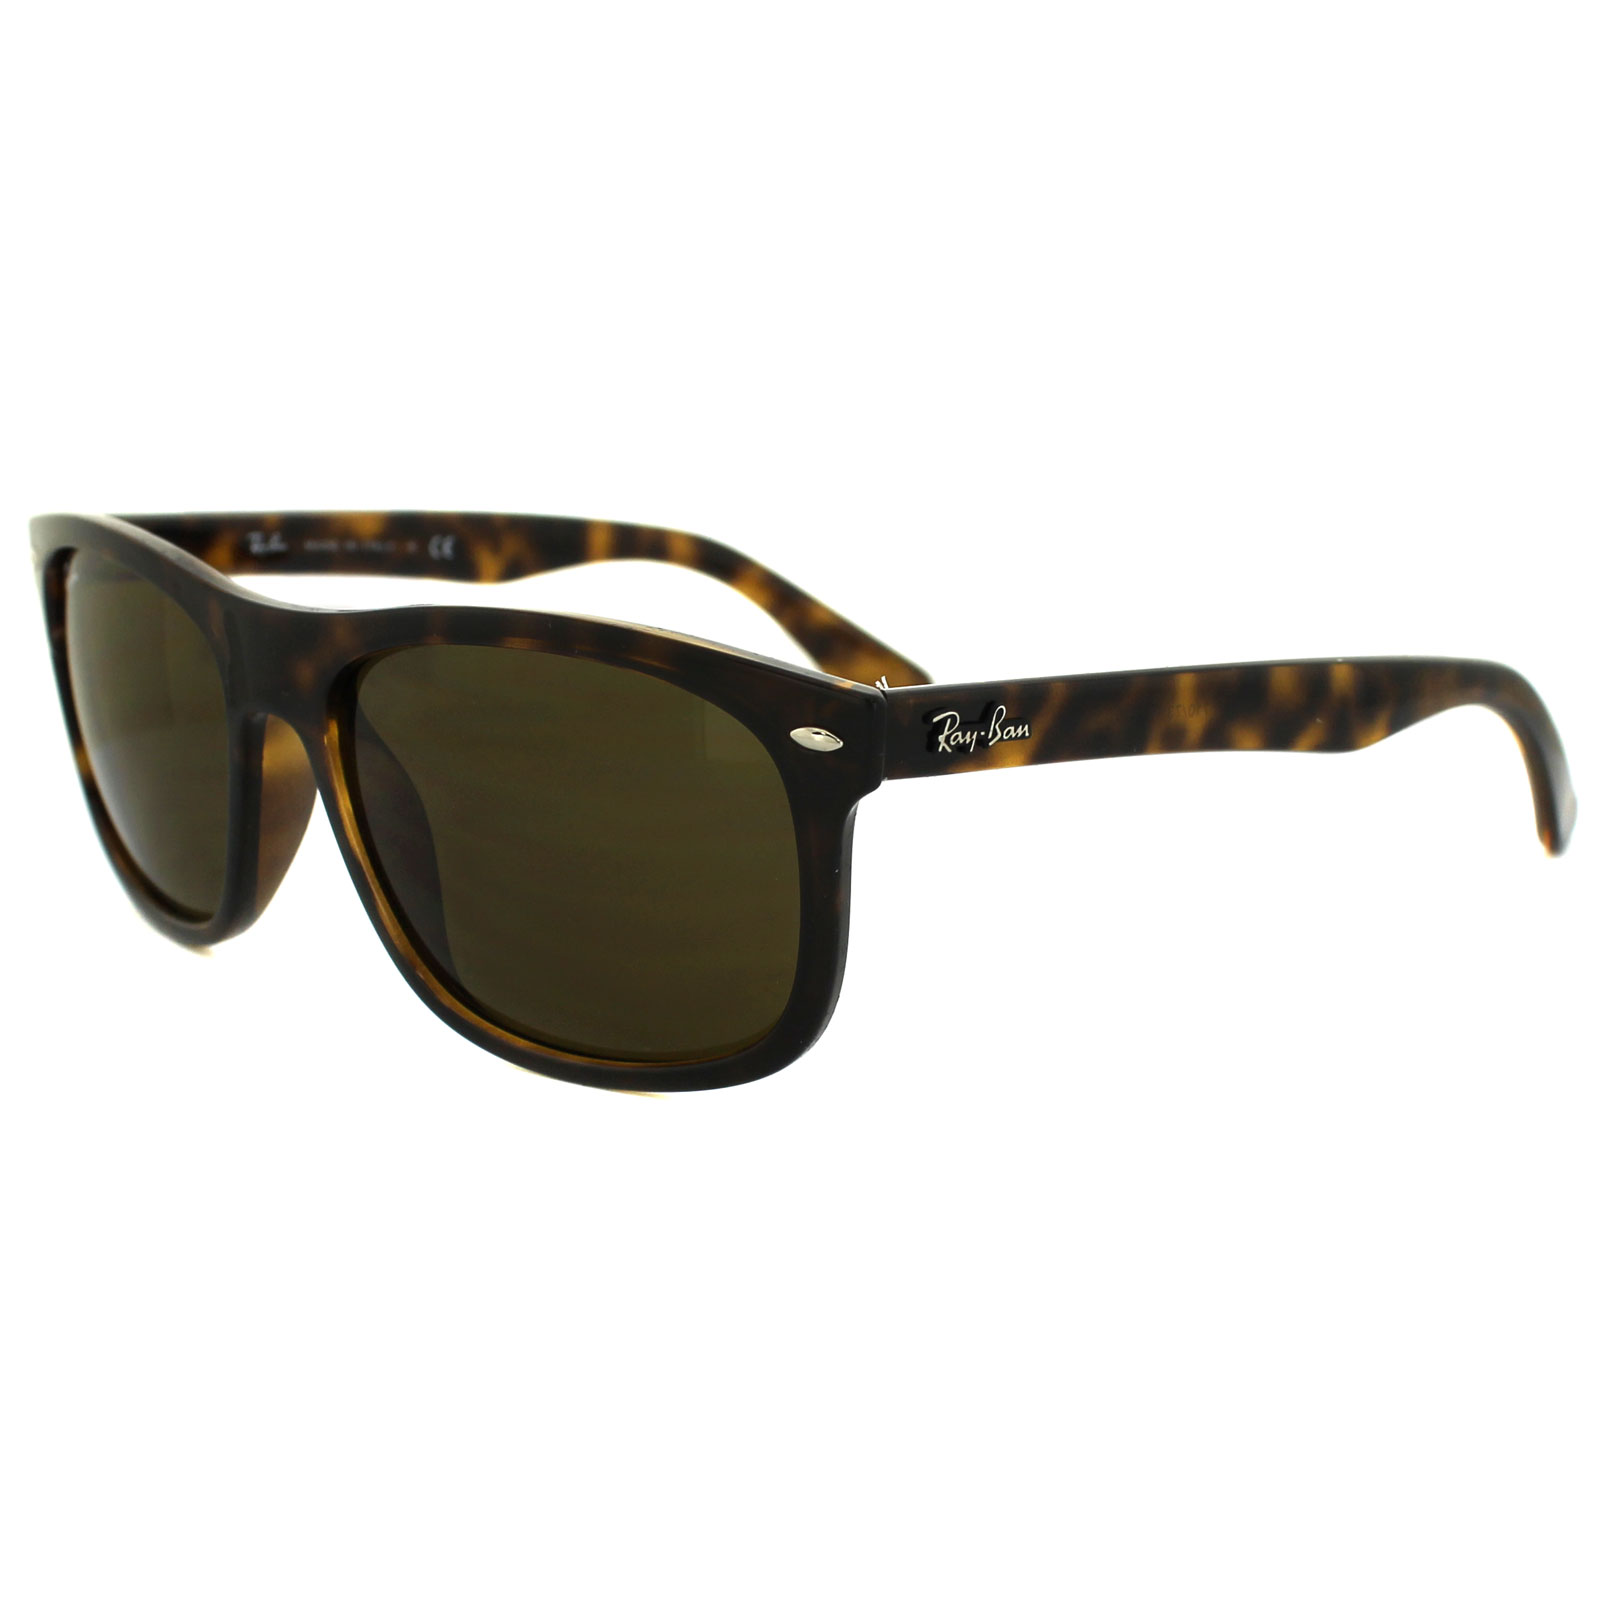 Ray-Ban RB 4226 710/73-small qHdZV9R